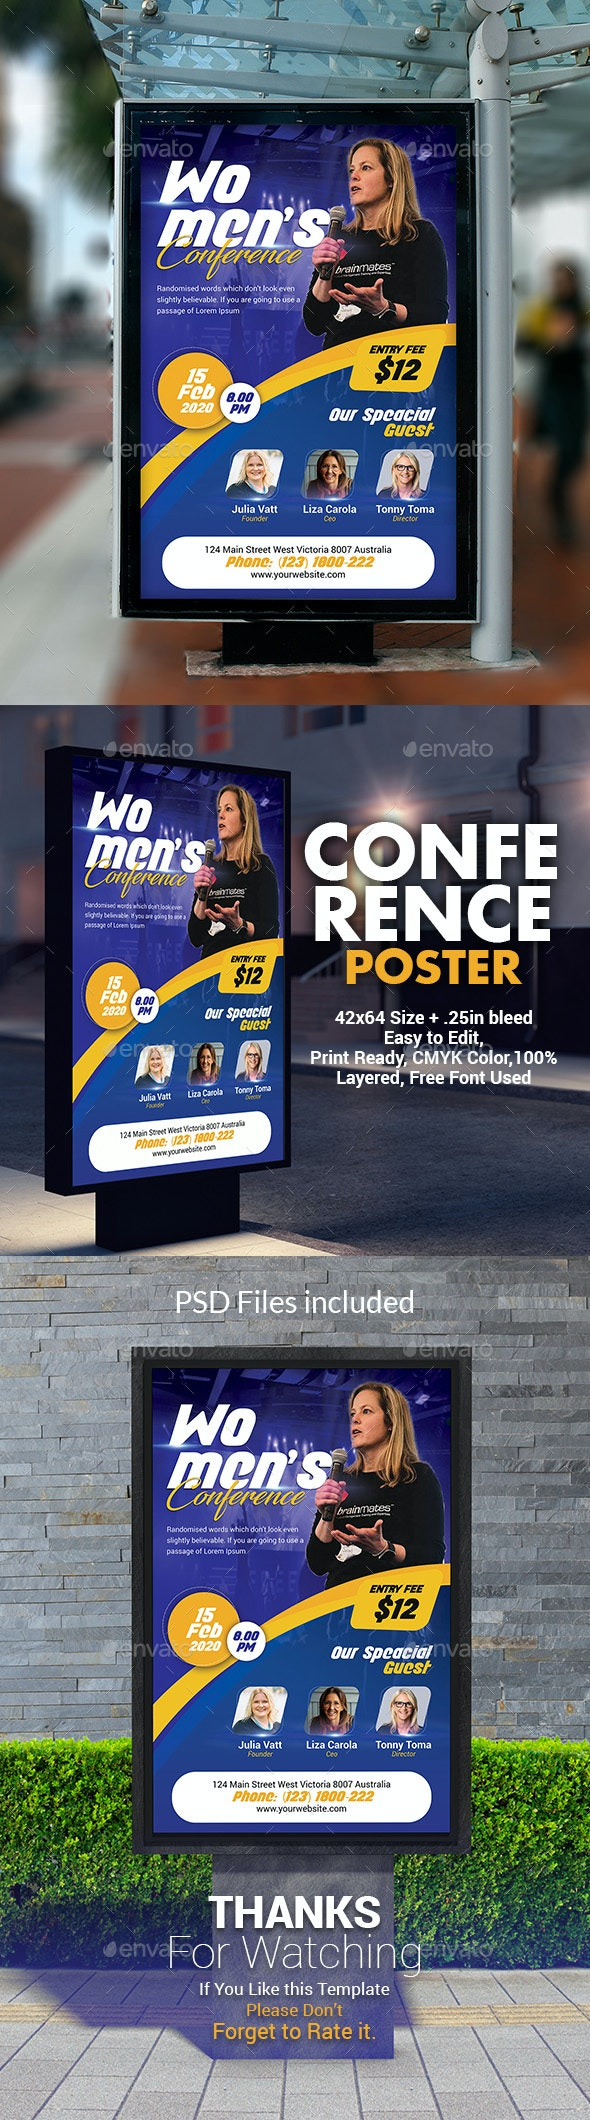 Women's Conference Poster Template - Signage Print Templates